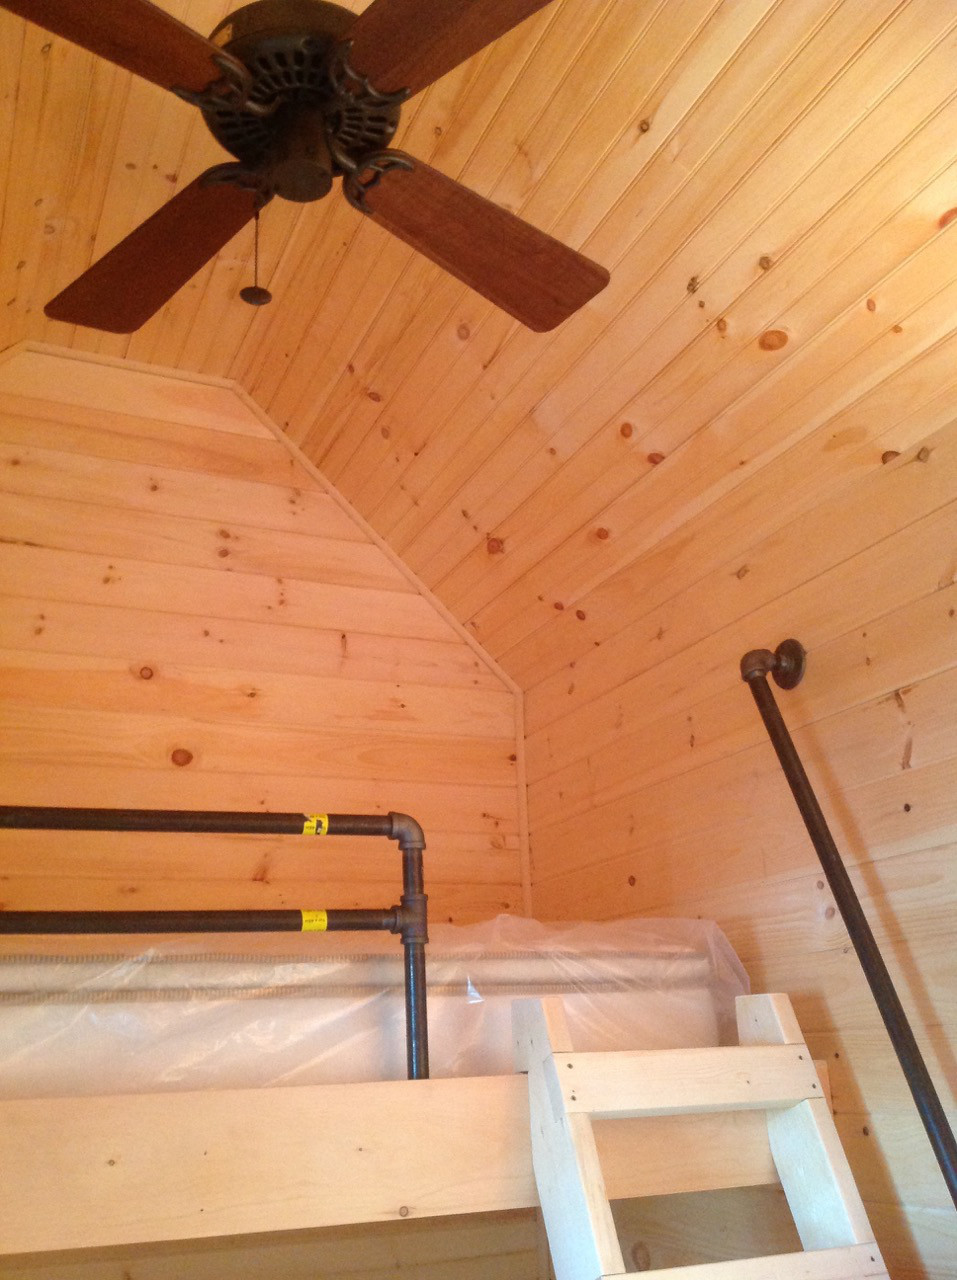 bunkhouse shed - upper twin-bed bunk with plumbing pipe railing and ceiling fan overhead - Atticmag